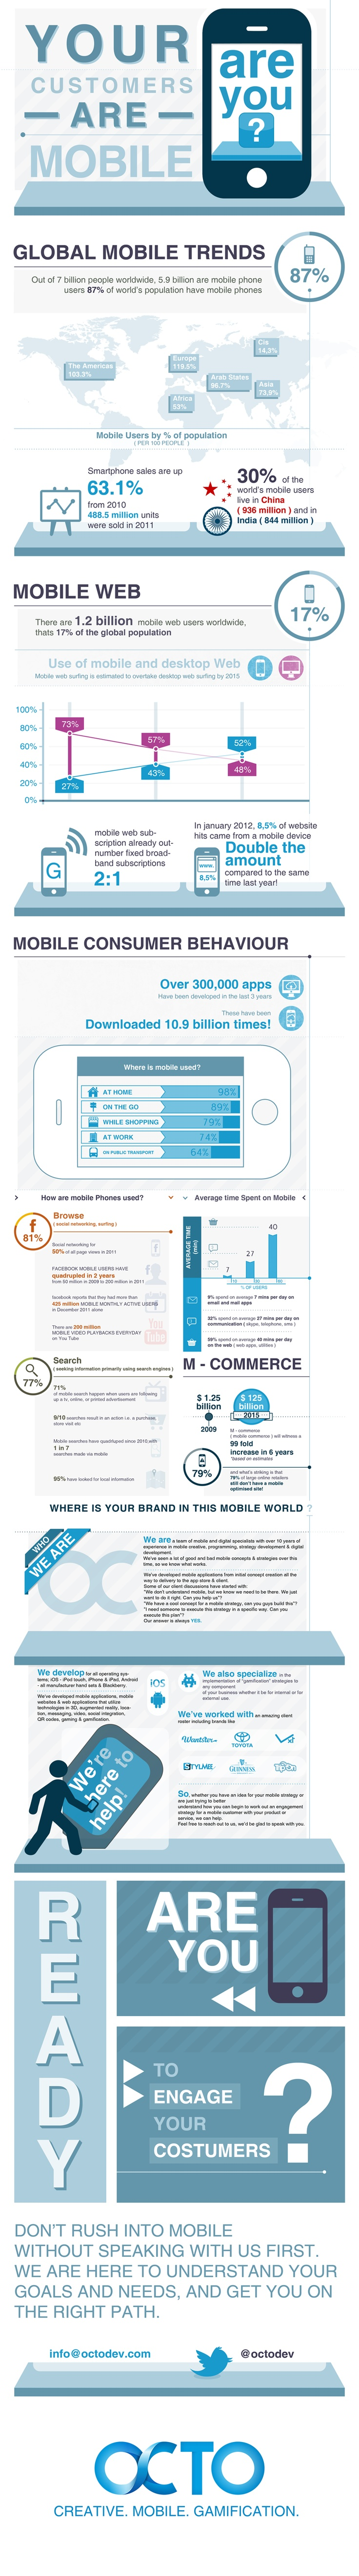 your customers are #mobile. Are you? #strategy #mobilemarketing #infographicMobilemarket Infographic, Strategies Mobilemarket, Amazing Infographic, Mobilee Infographic, Mobiles Tech, Mobiles Infographic, Mobiles Phones, Mobiles Strategies, Octo Infographic Web